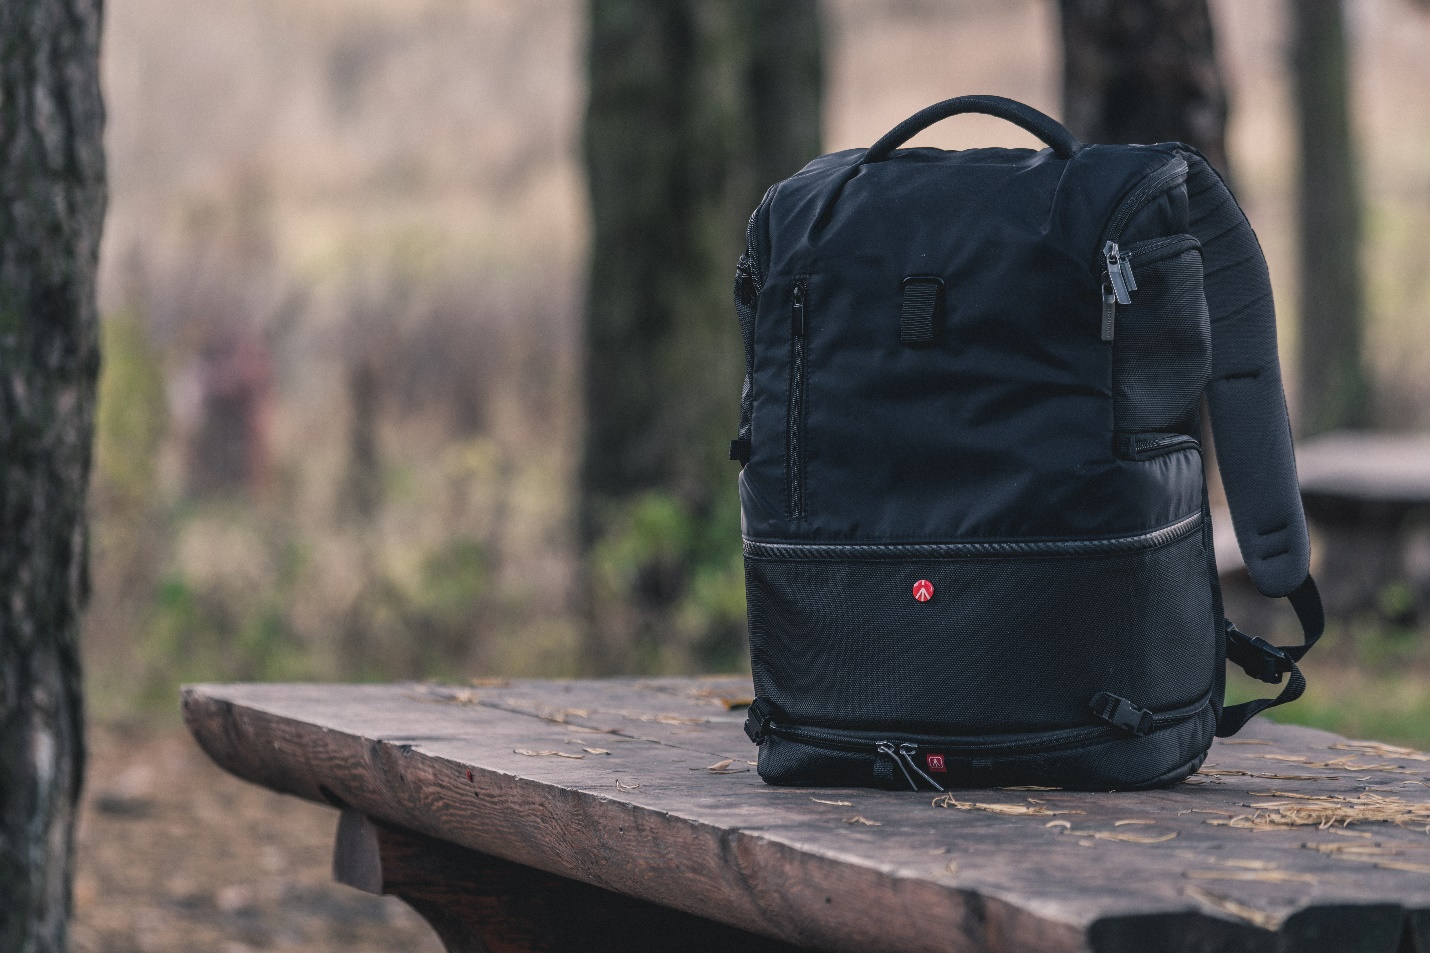 Expect extraordinary execution with this North Face backpack